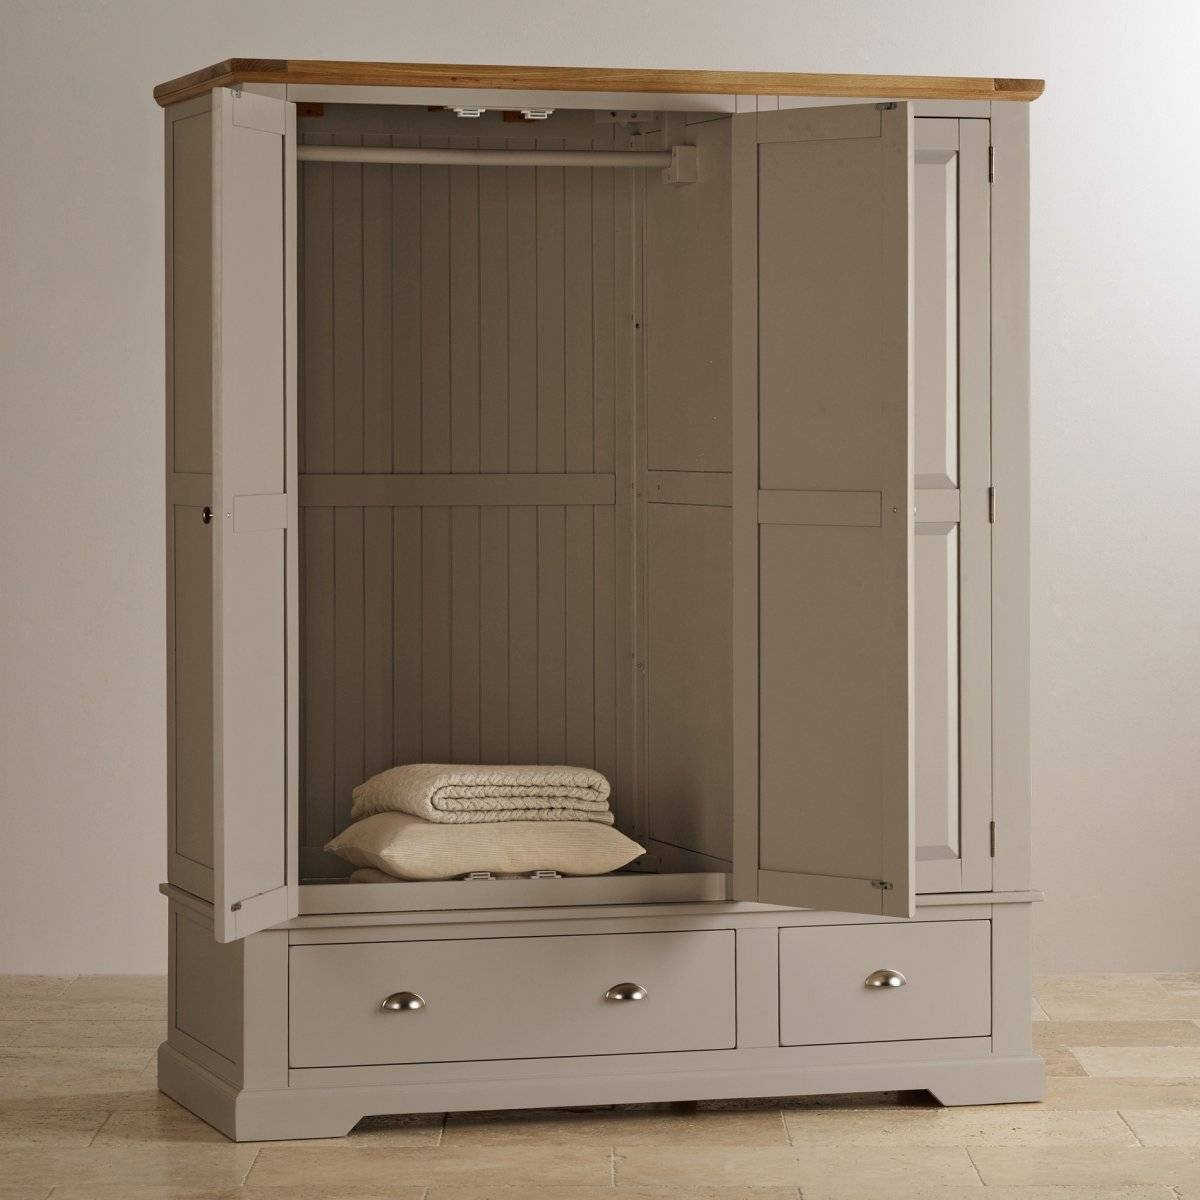 St Ives Grey Painted Triple Wardrobe In Natural Oak intended for Grey Painted Wardrobes (Image 12 of 15)